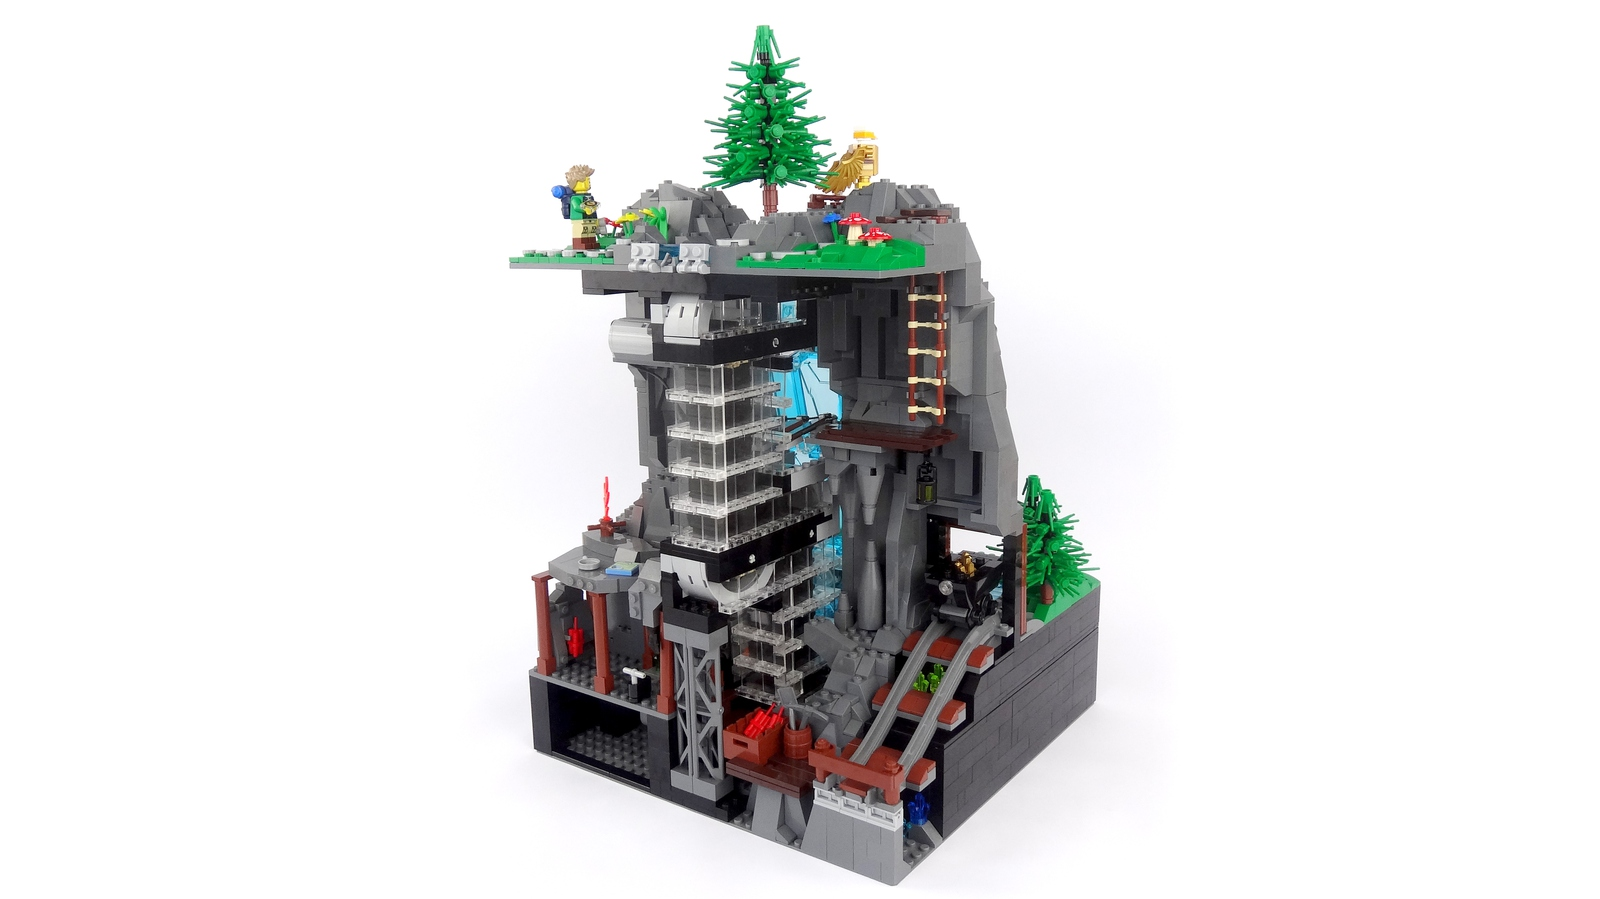 lego-ideas-working-waterfall-with-continuous-flowing-water-legoparadise-2 zusammengebaut.com